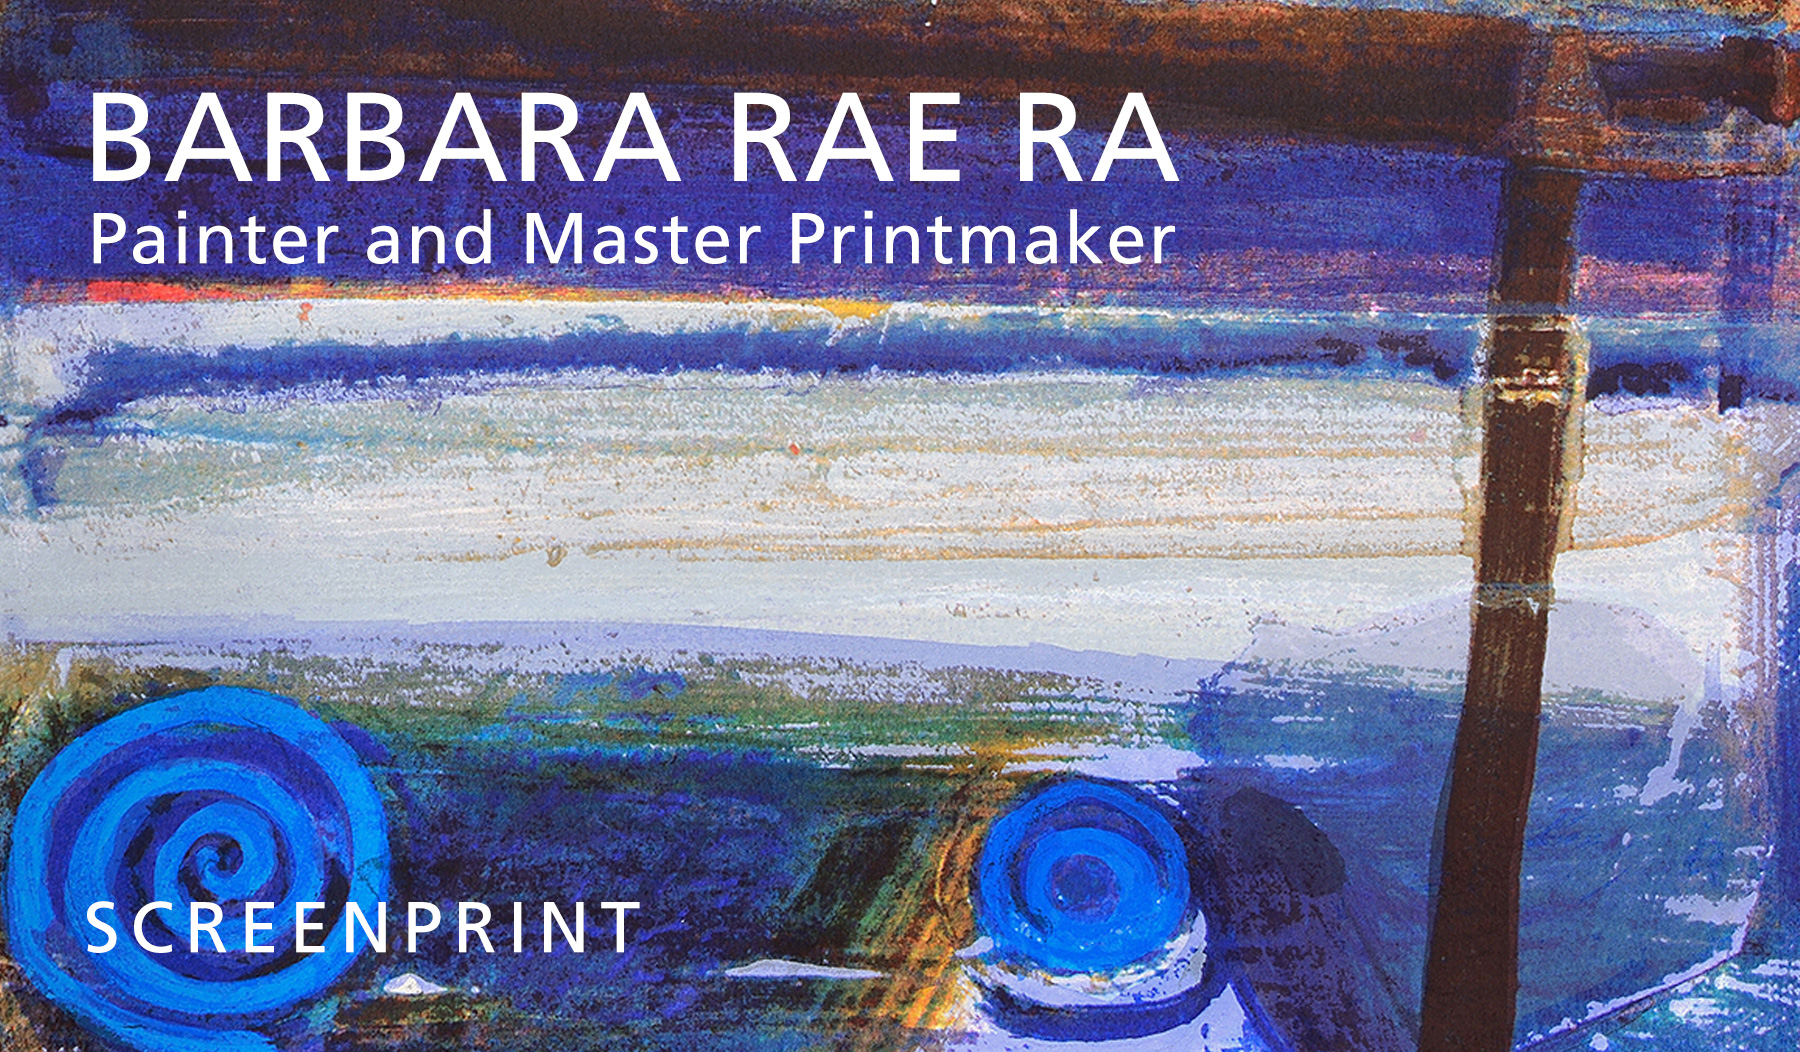 rae_banner2_screenprint.jpg